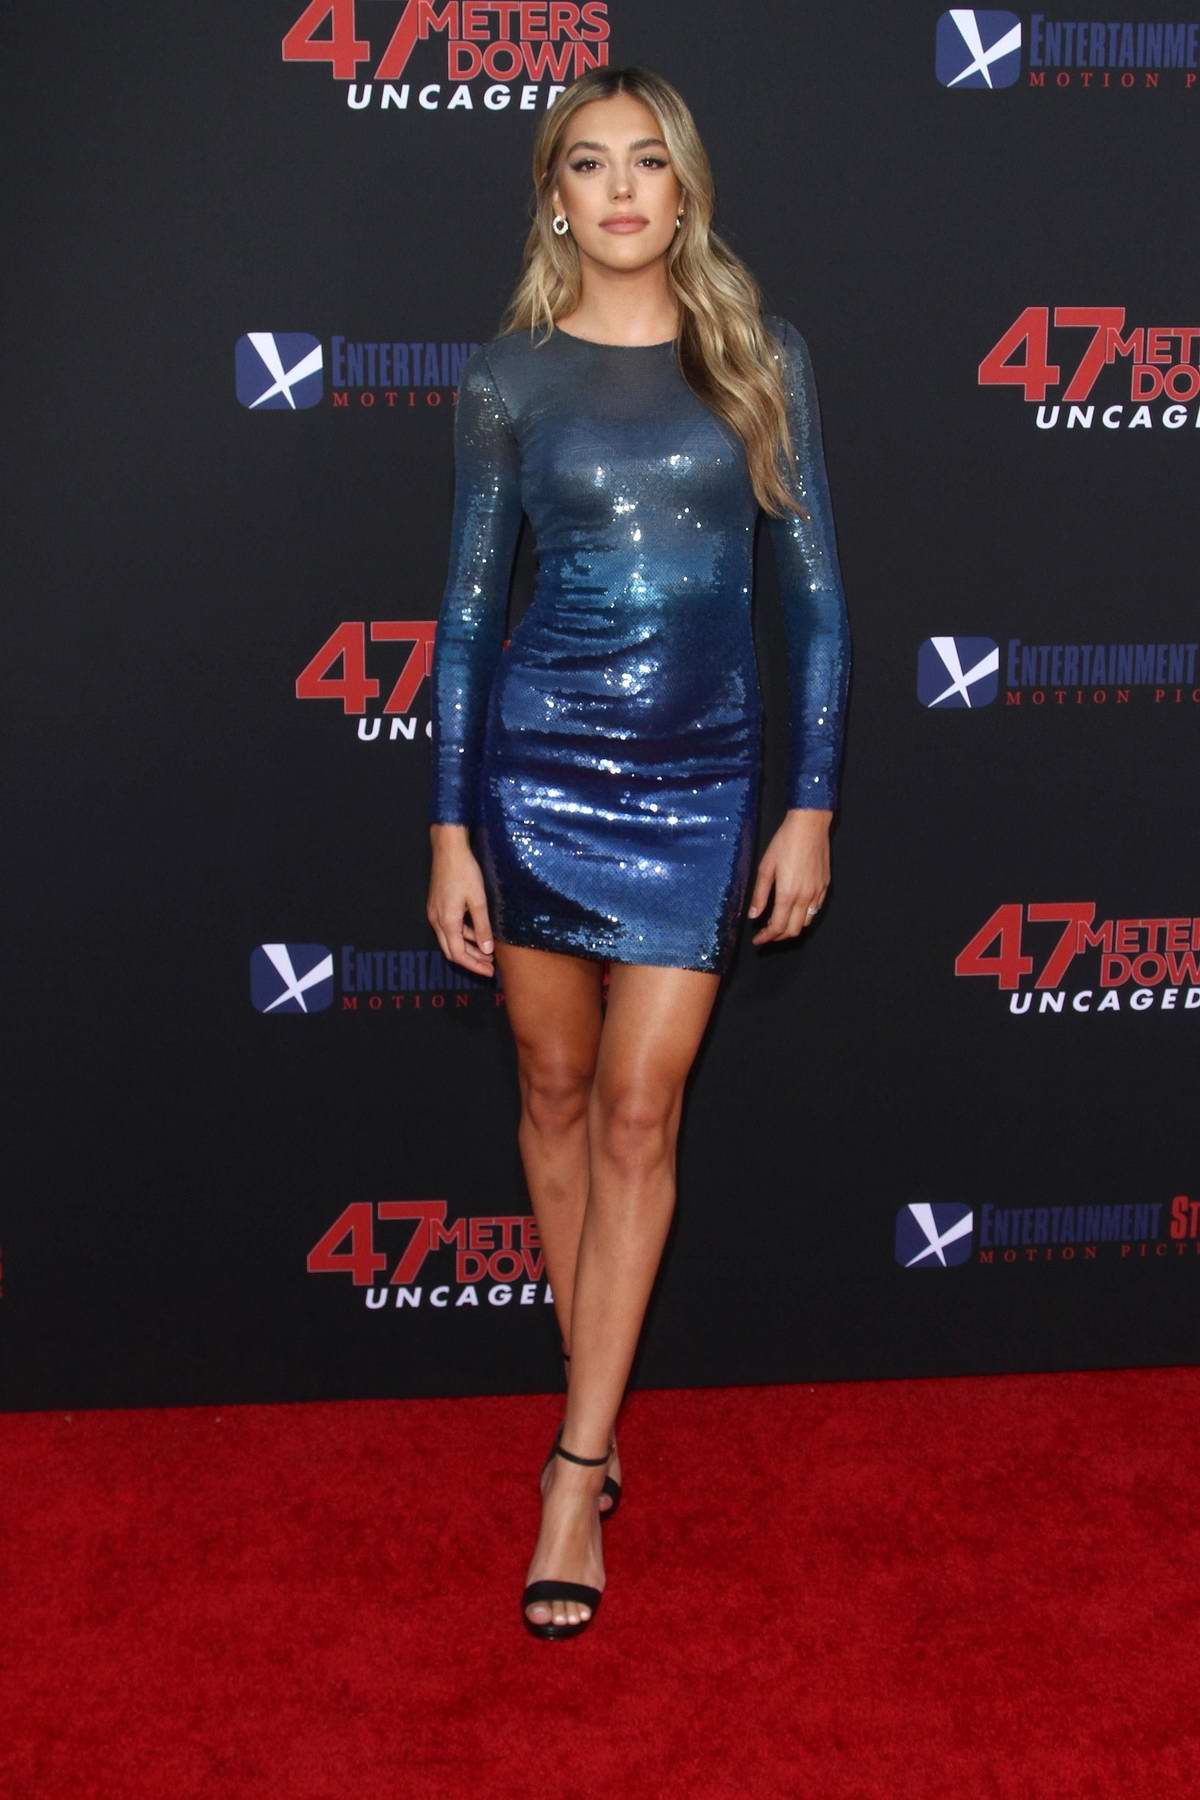 Sistine Stallone attends '47 Meters Down: Uncaged' Premiere at Regency Village Theatre in Westwood, California